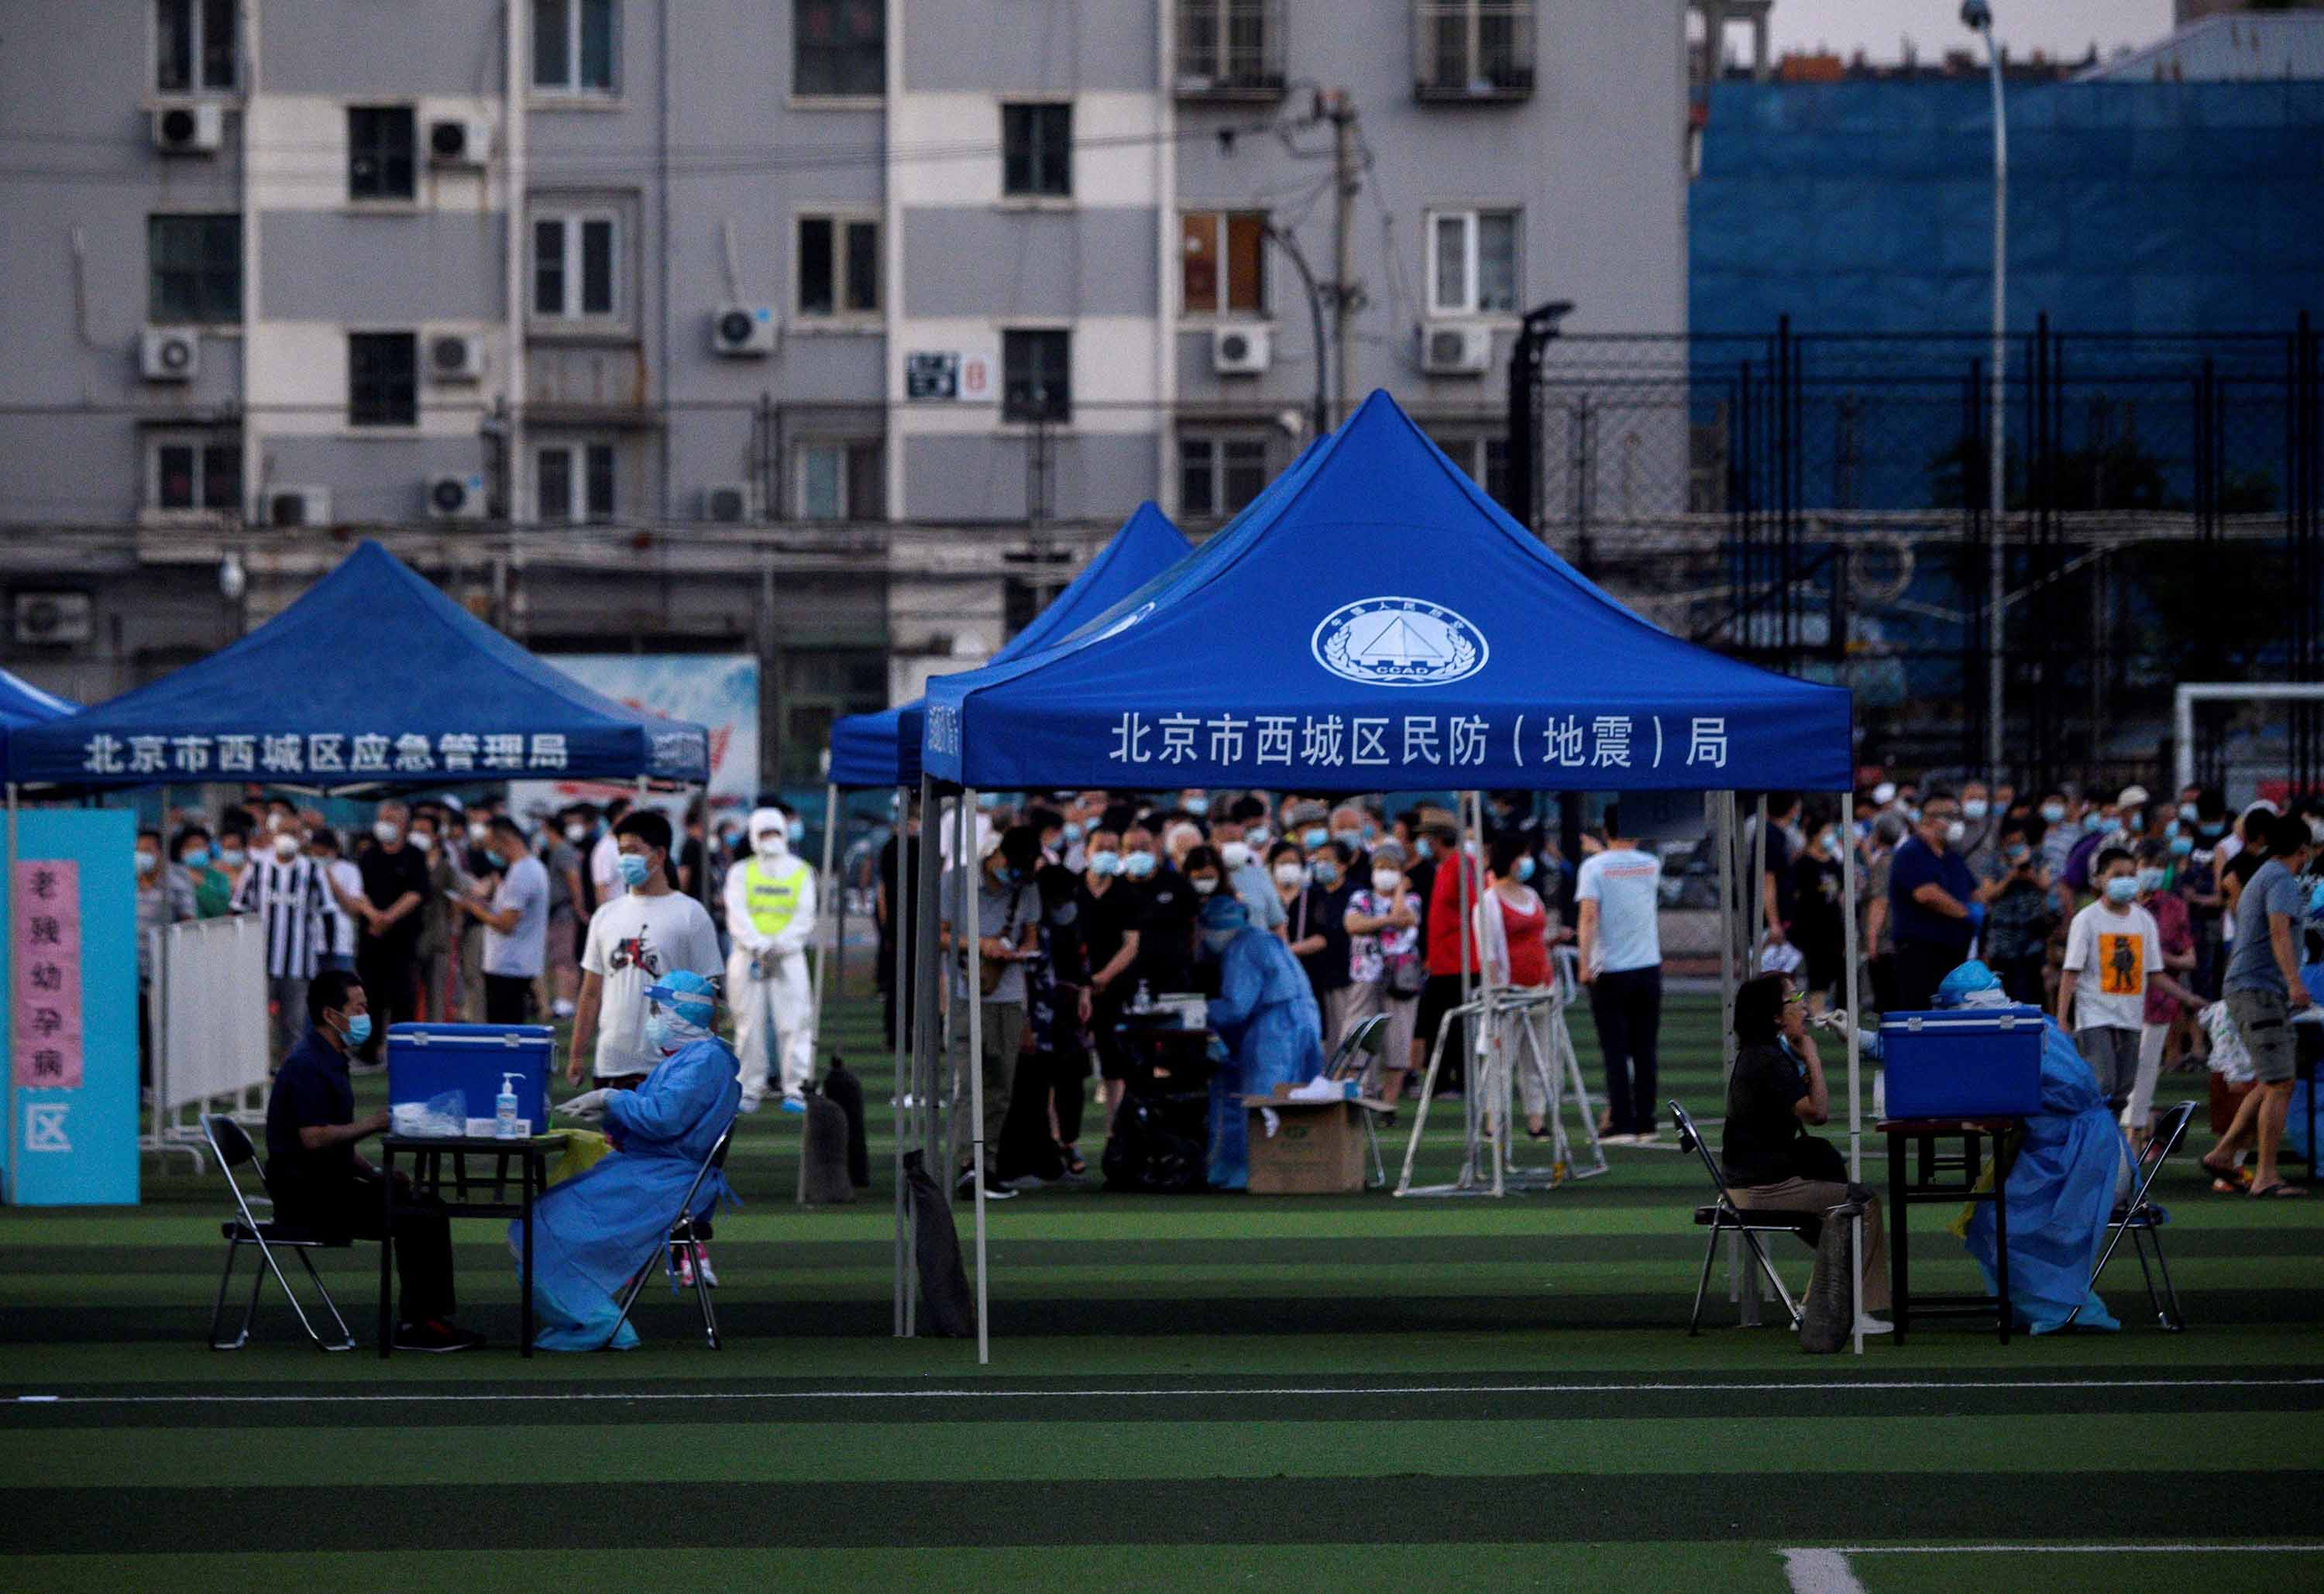 People who visited or live near the Xinfadi food market queue for coronavirus swab testing at Guang'an Sport Center in Beijing, on June 14.